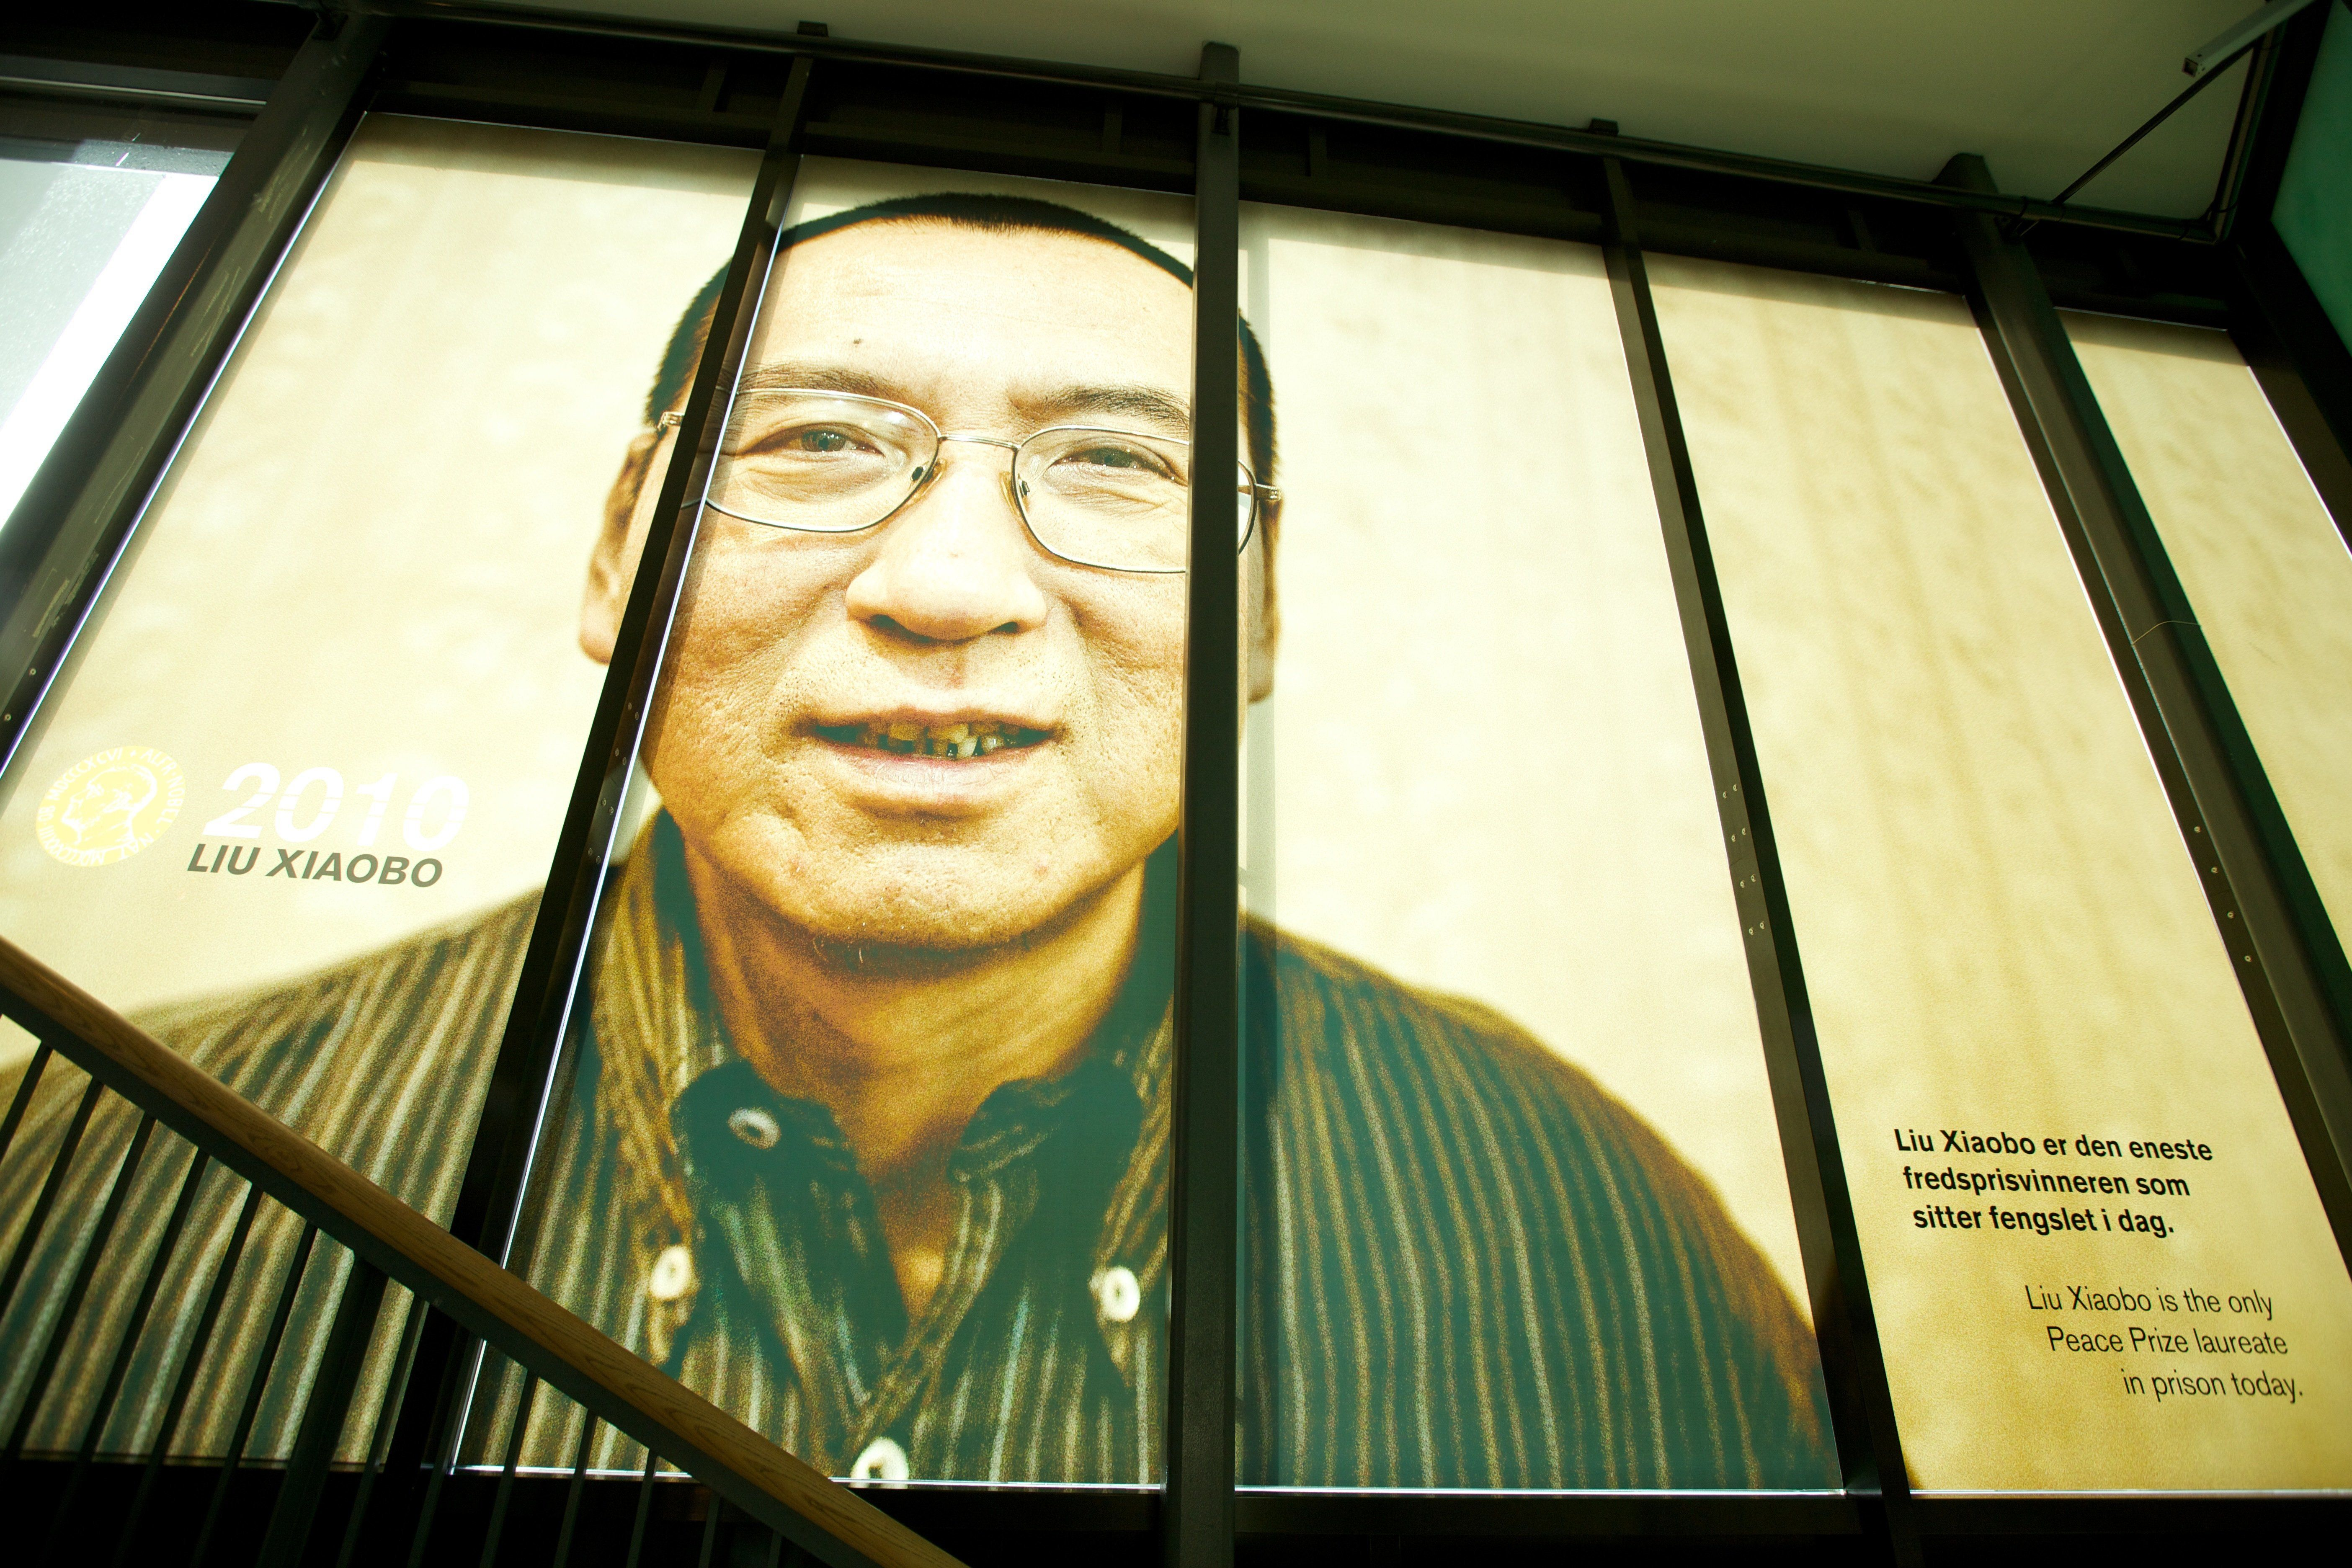 OSLO, NORWAY - OCTOBER 11: . A picture of the 2010 Nobel Peace Prize Laureate Liu Xiaobo is seen at The exhibition ?Be Democracy? at The Nobel Peace Center on October 11, 2014 in Oslo, Norway. (Photo by Ragnar Singsaas/Getty Images)